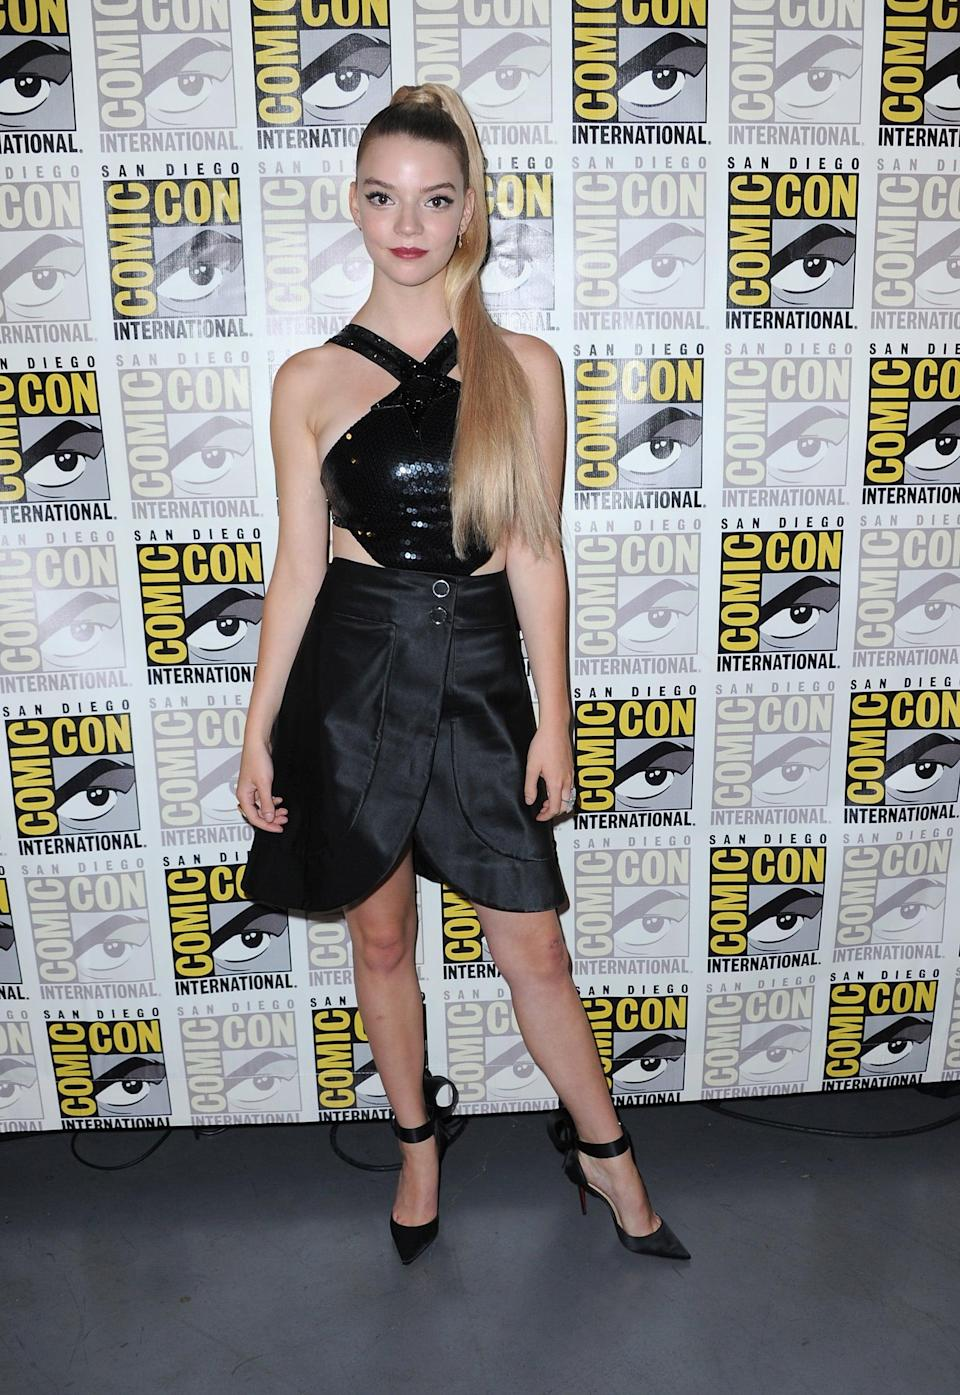 <p>Anya wore Giorgio Armani teamed with Christian Louboutin heels, styled by Ozzy Shah. </p>